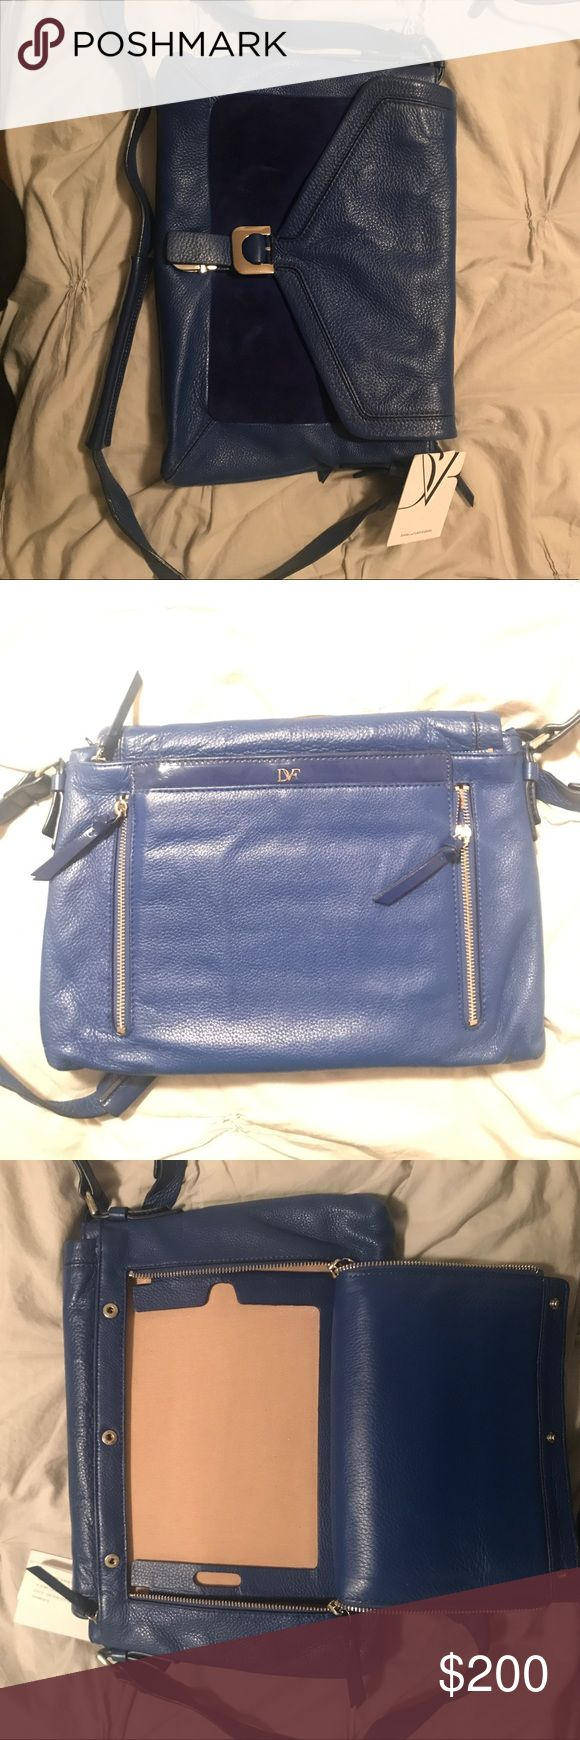 Dvf leather and suede blue bag Super cute medium sized bag with a compartment for your iPad in the back. Very spacious. Diane Von Furstenberg Bags Shoulder Bags